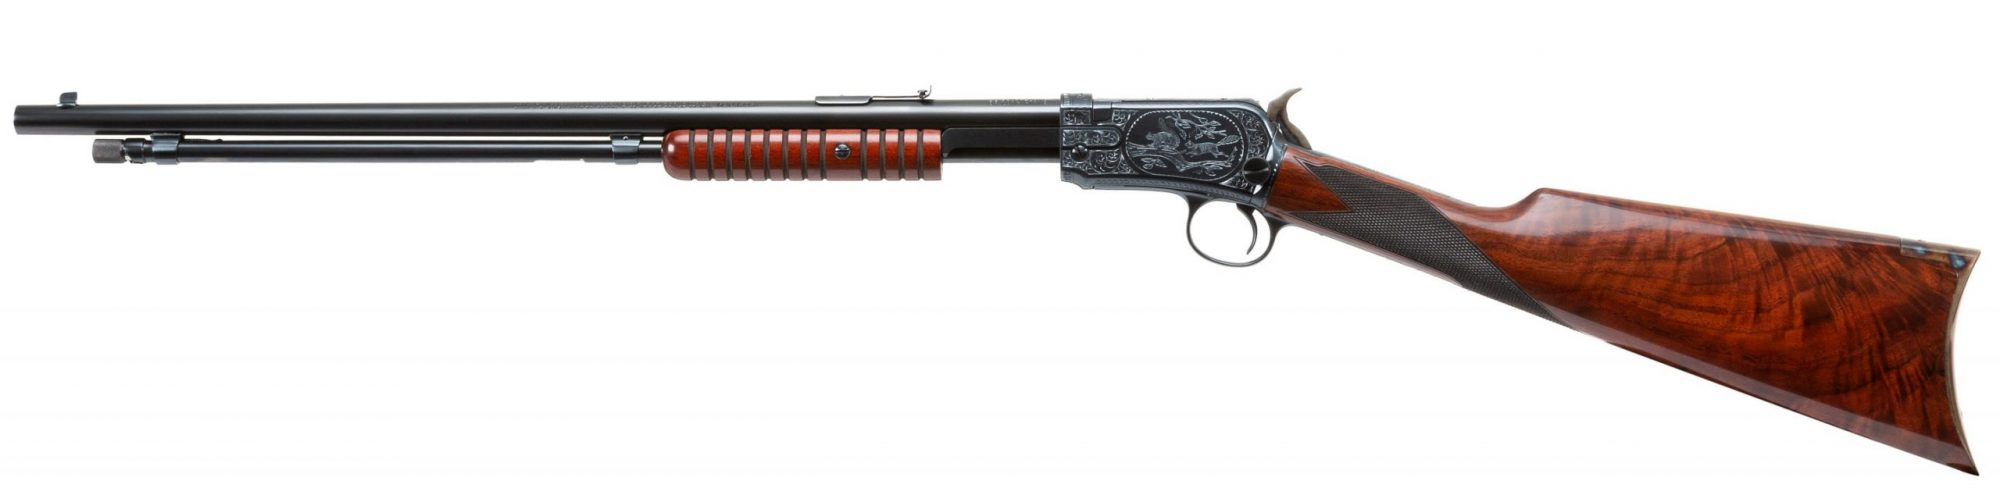 Photo of a restored engraved Winchester Model 1906 rifle by Turnbull Restoration of Bloomfield, NY